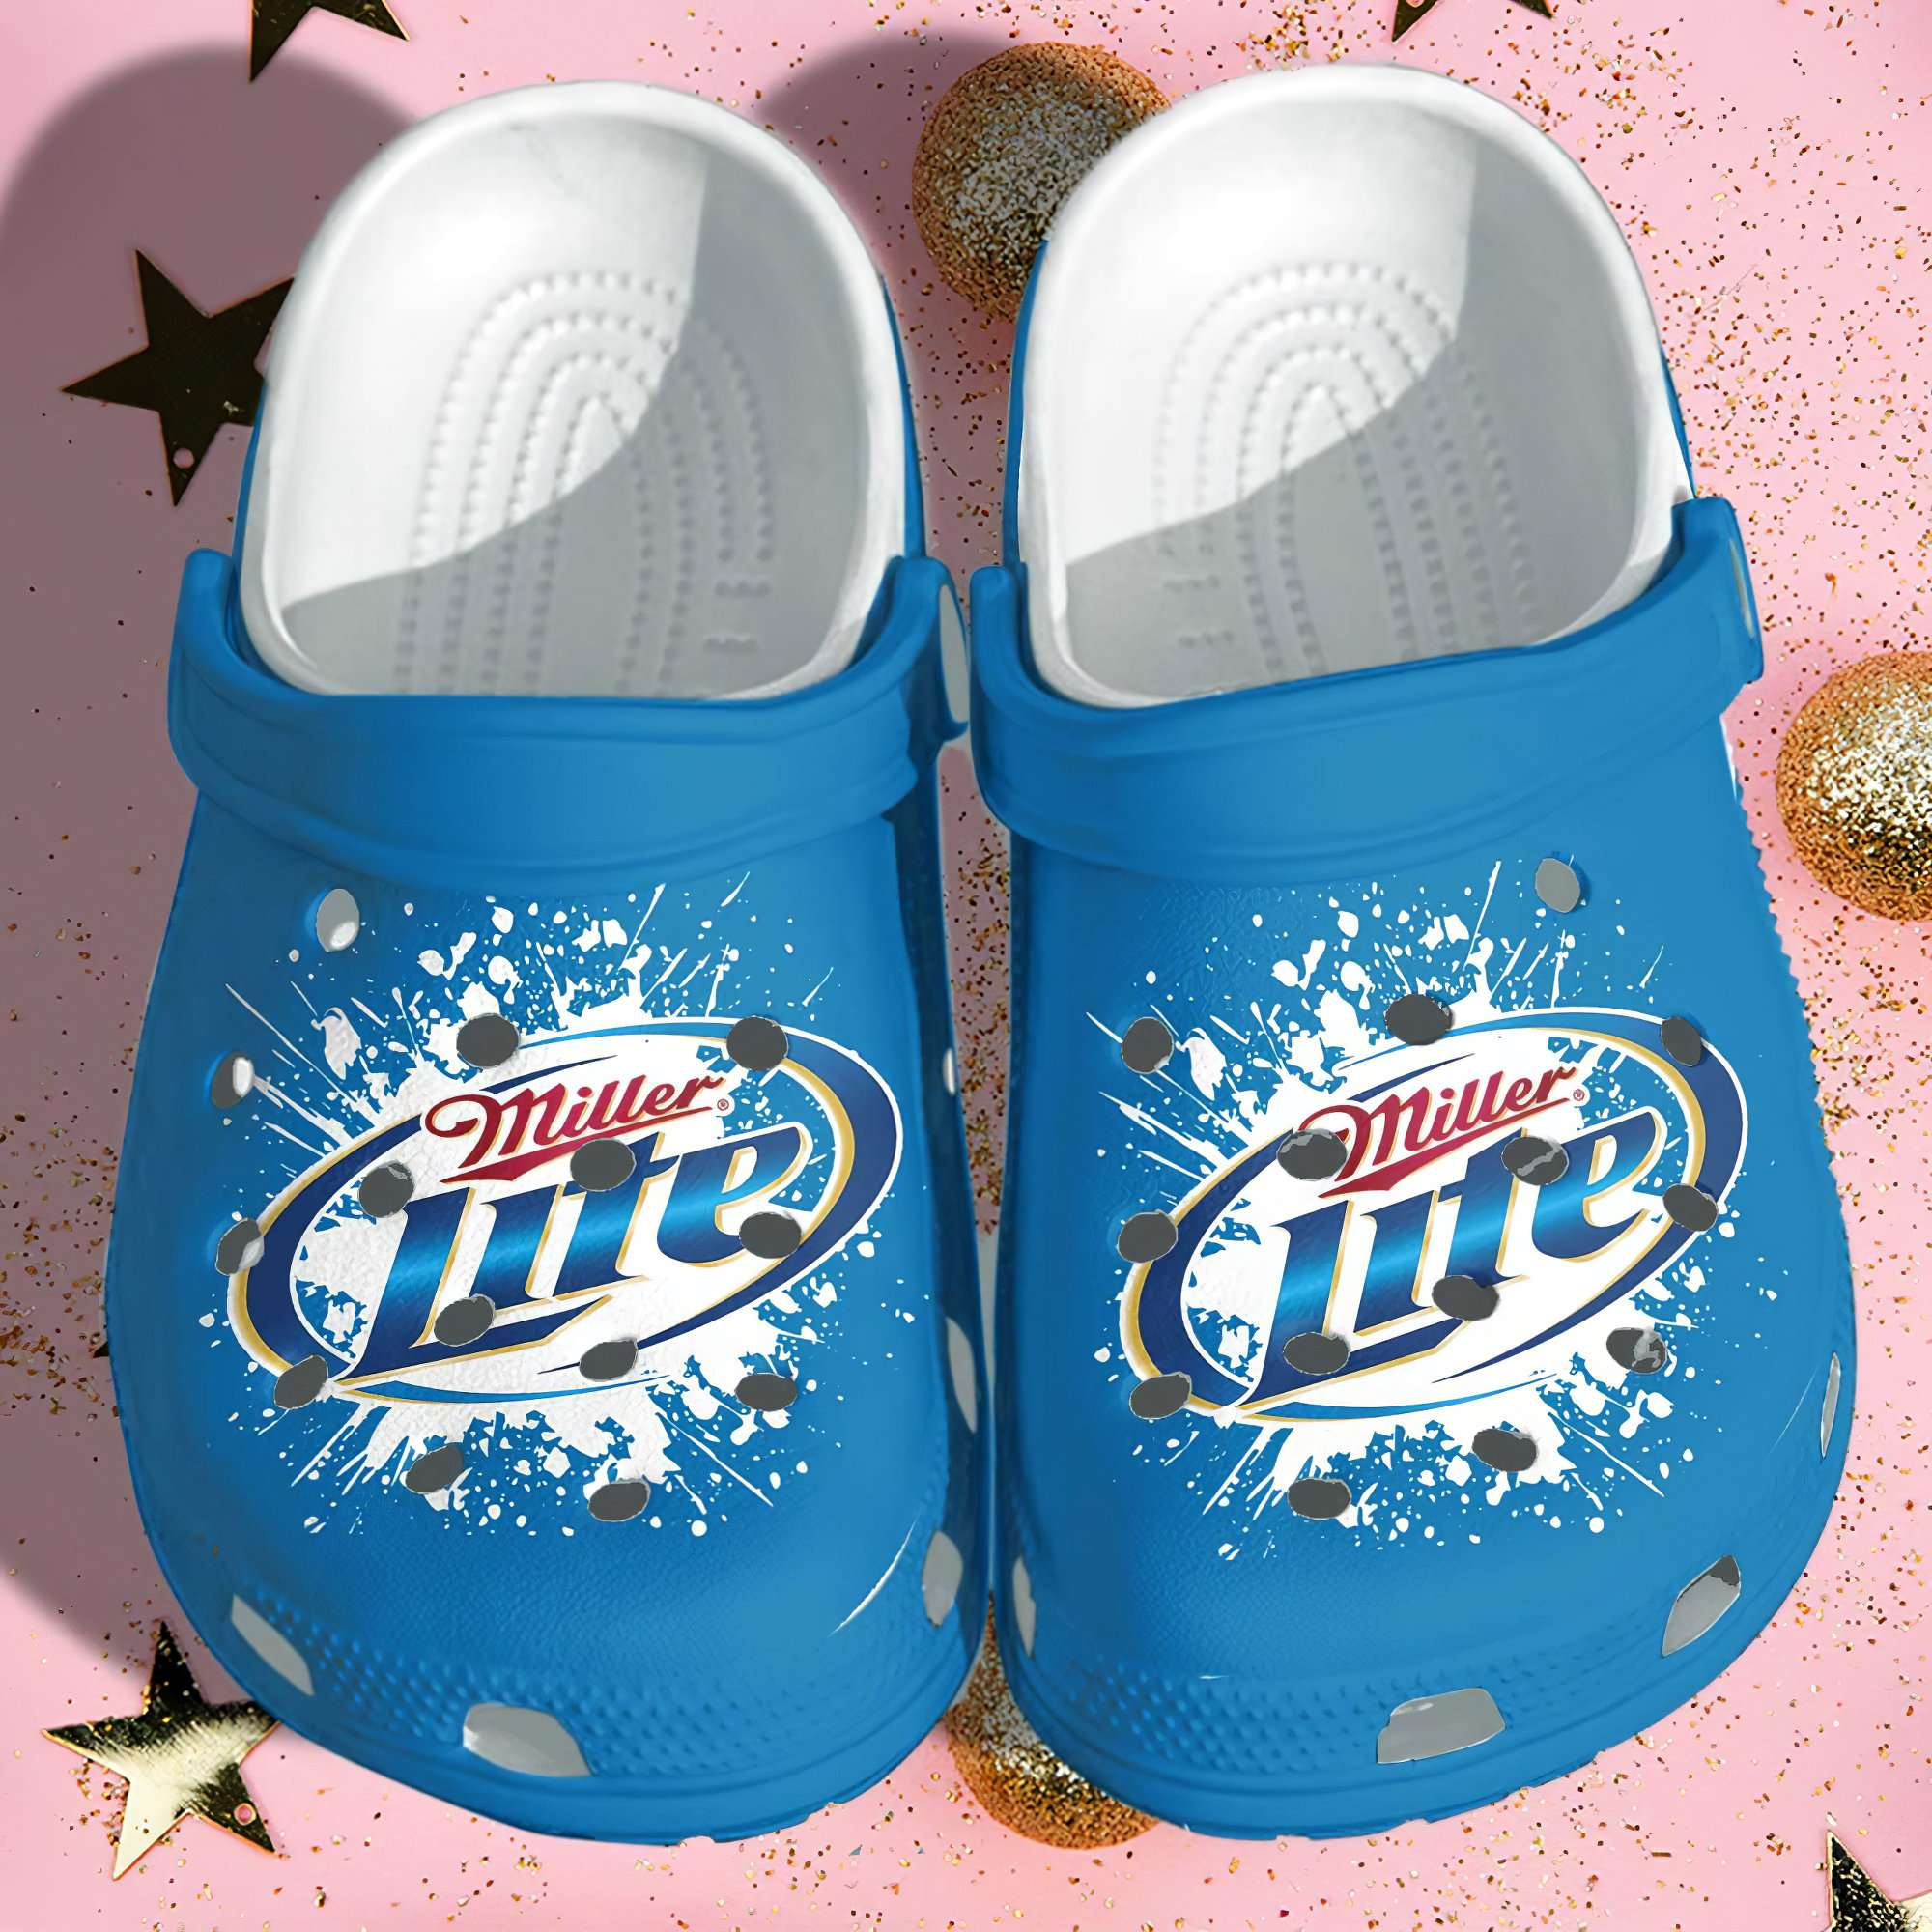 Miller Lite Funny Crocs Clog Shoes